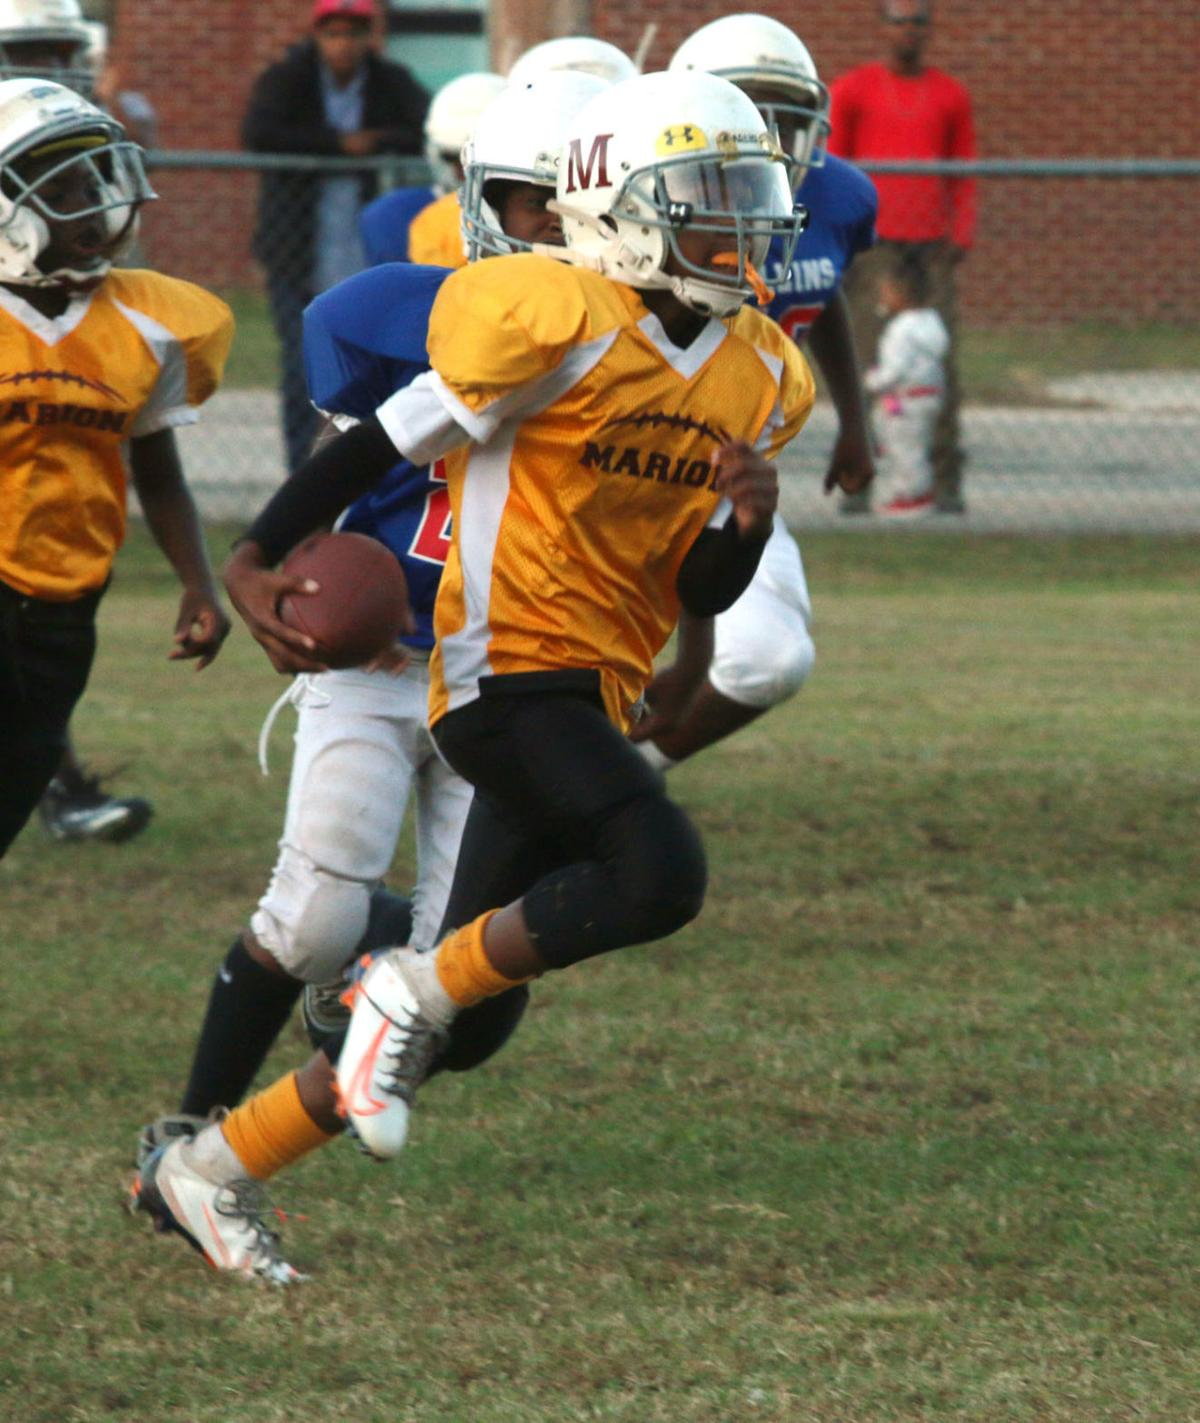 20191016_mse_sports_Marion hosts youth football game action against Mullins_p3